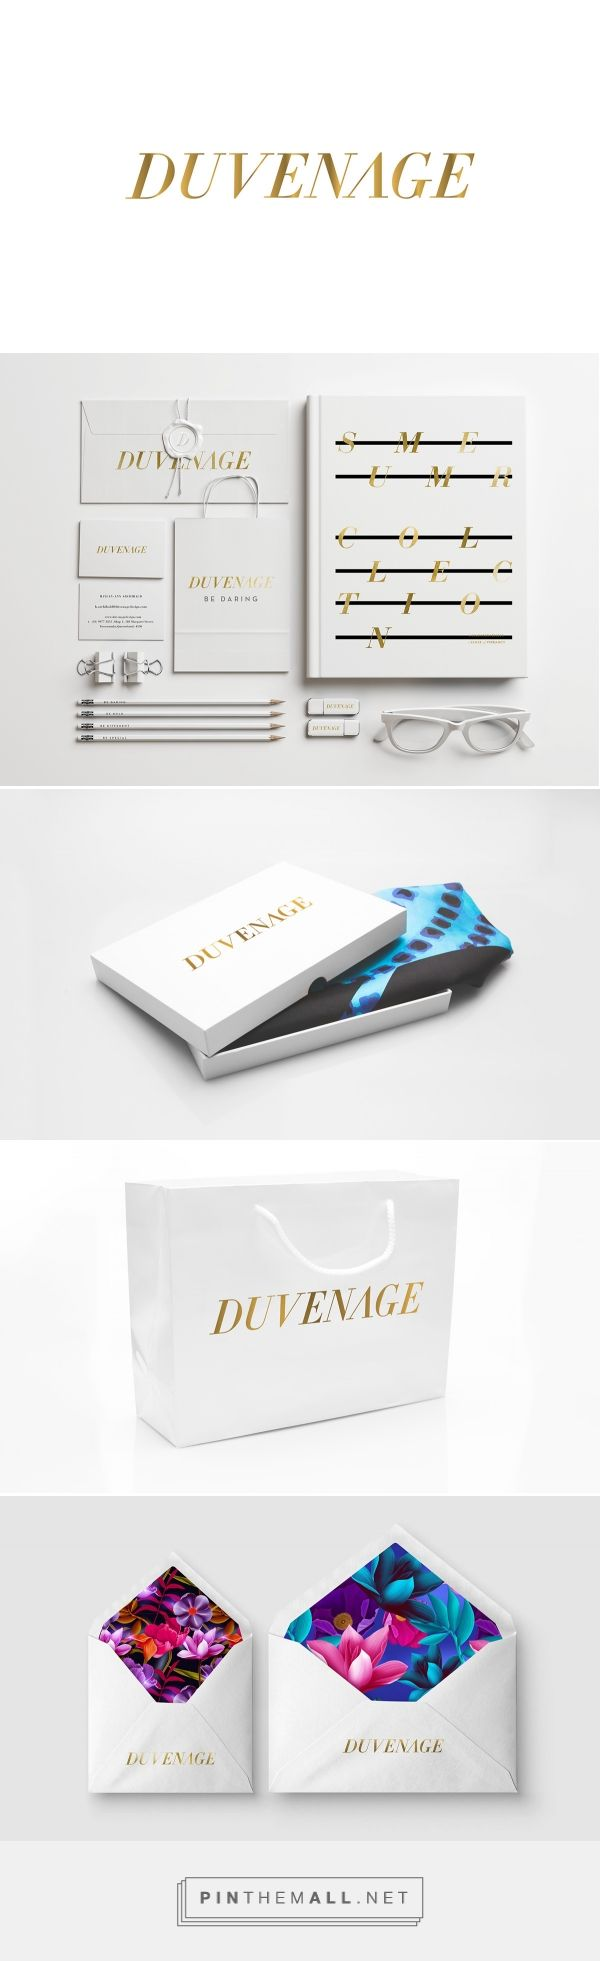 Fashion, graphic design and packaging for Duvenage on Behance by Josip Kelva Melbourne, Australia curated by Packaging Diva PD.  Fashion brand with simple beautiful packaging.